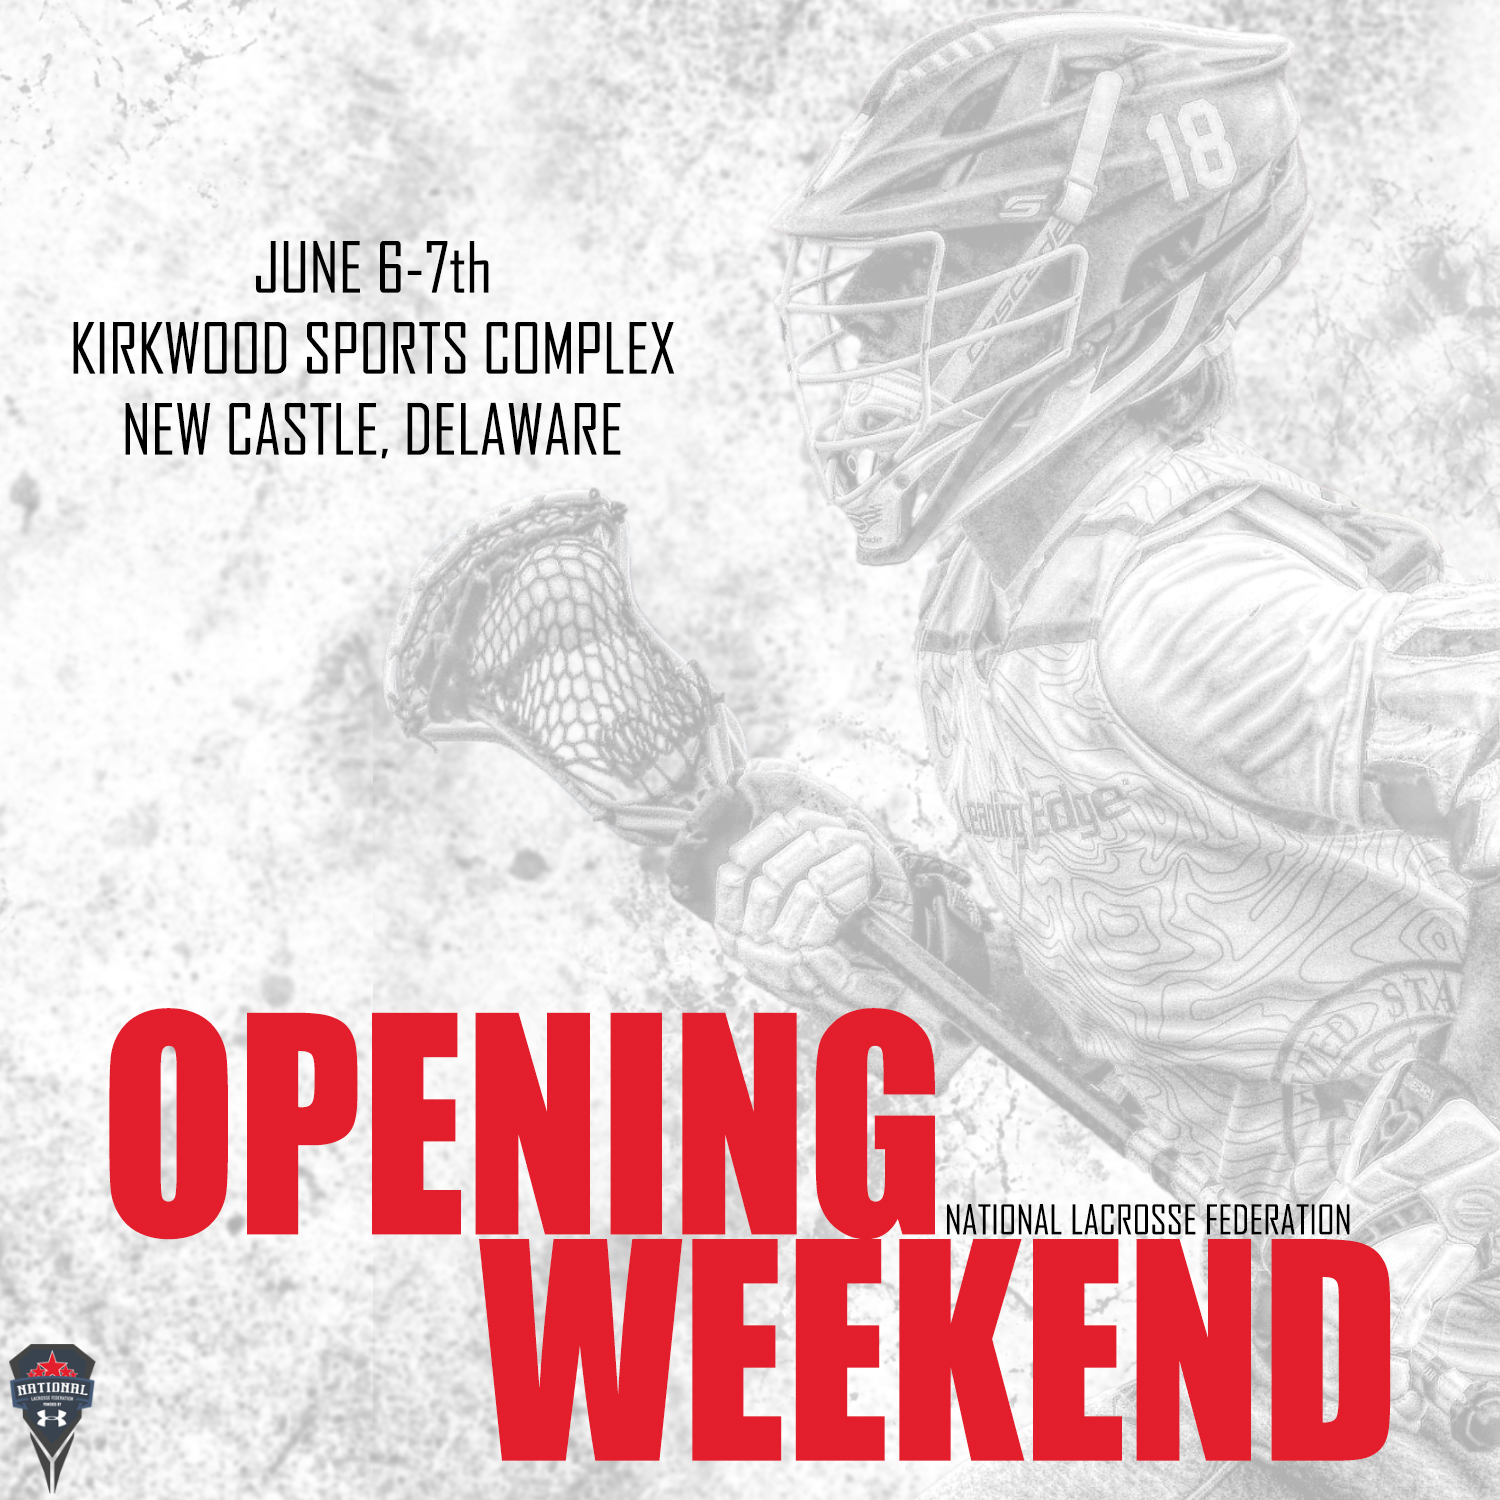 NLF 2020 Opening Weekend Square Graphic